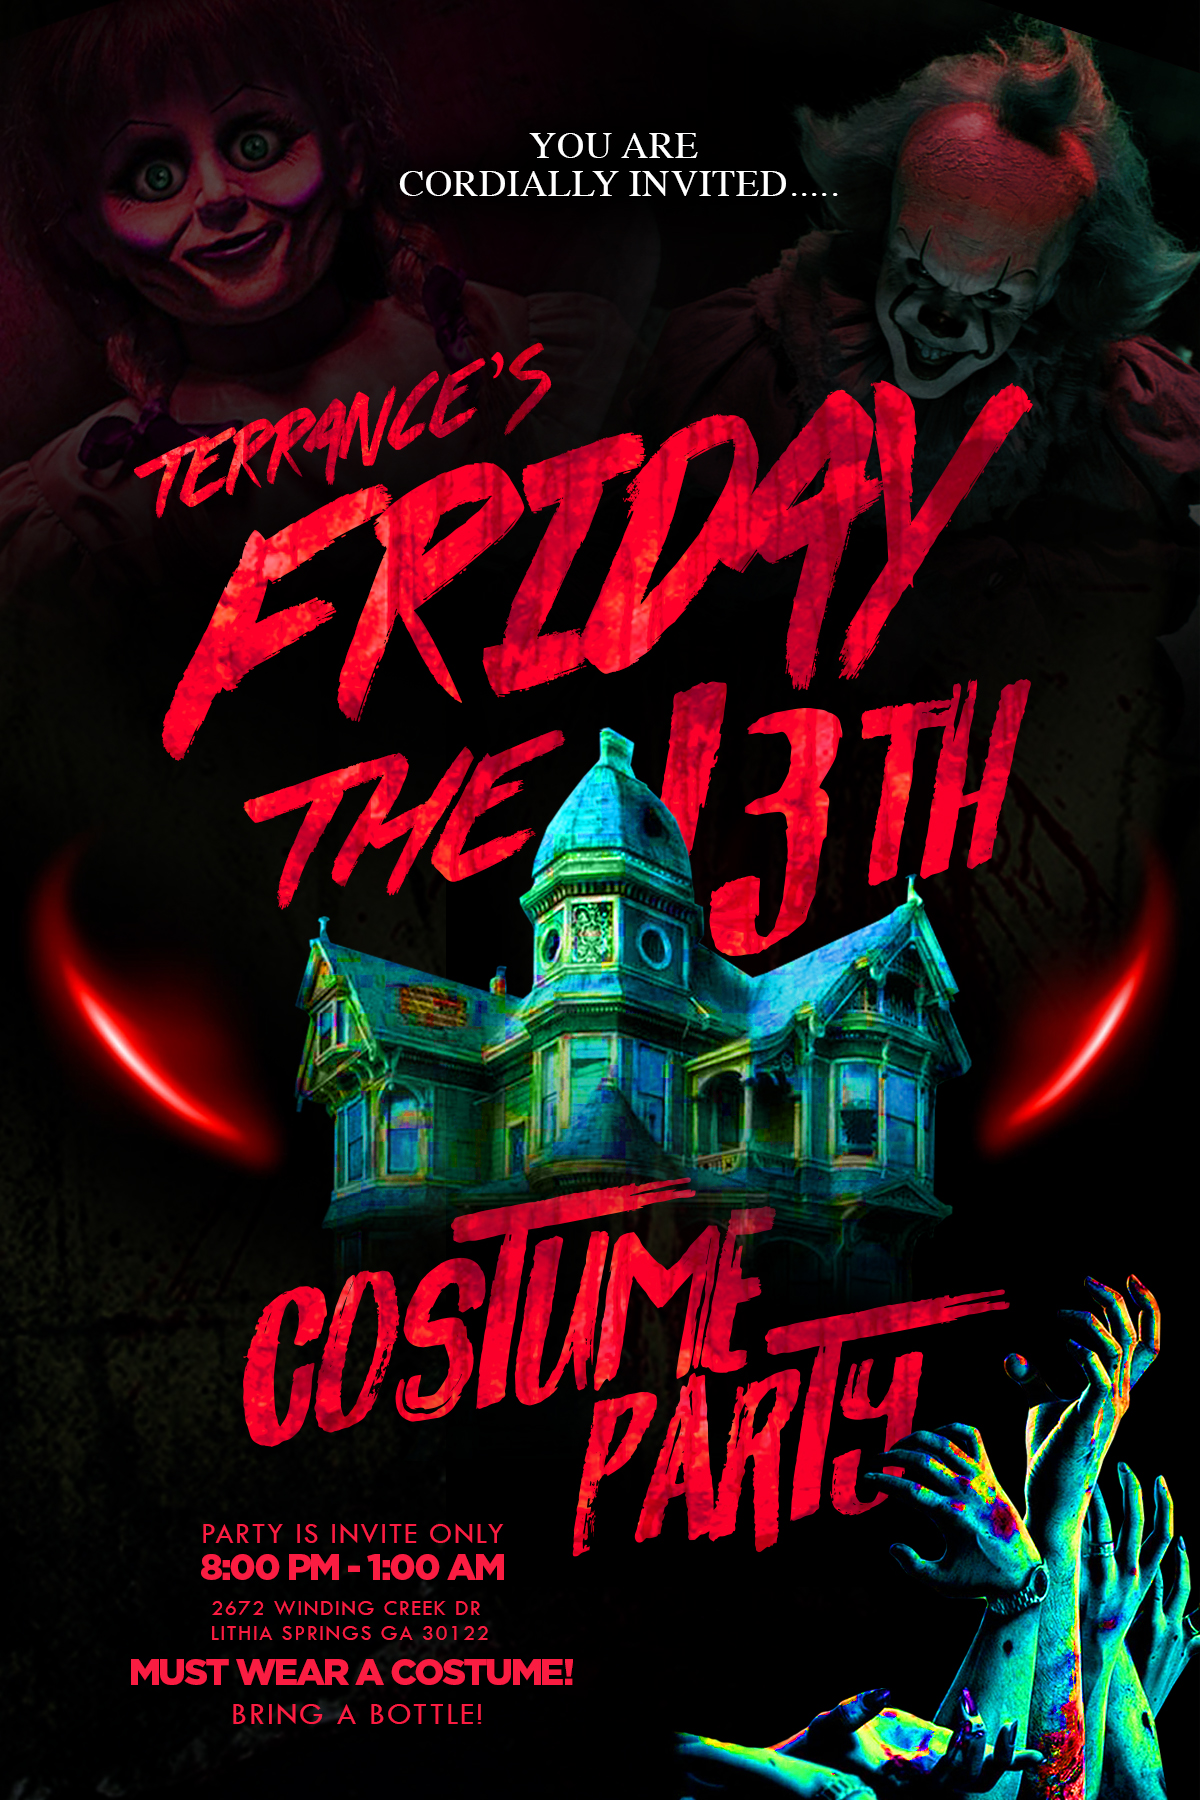 Terrance Friday the 13th Birthday Party Flyer Invitation